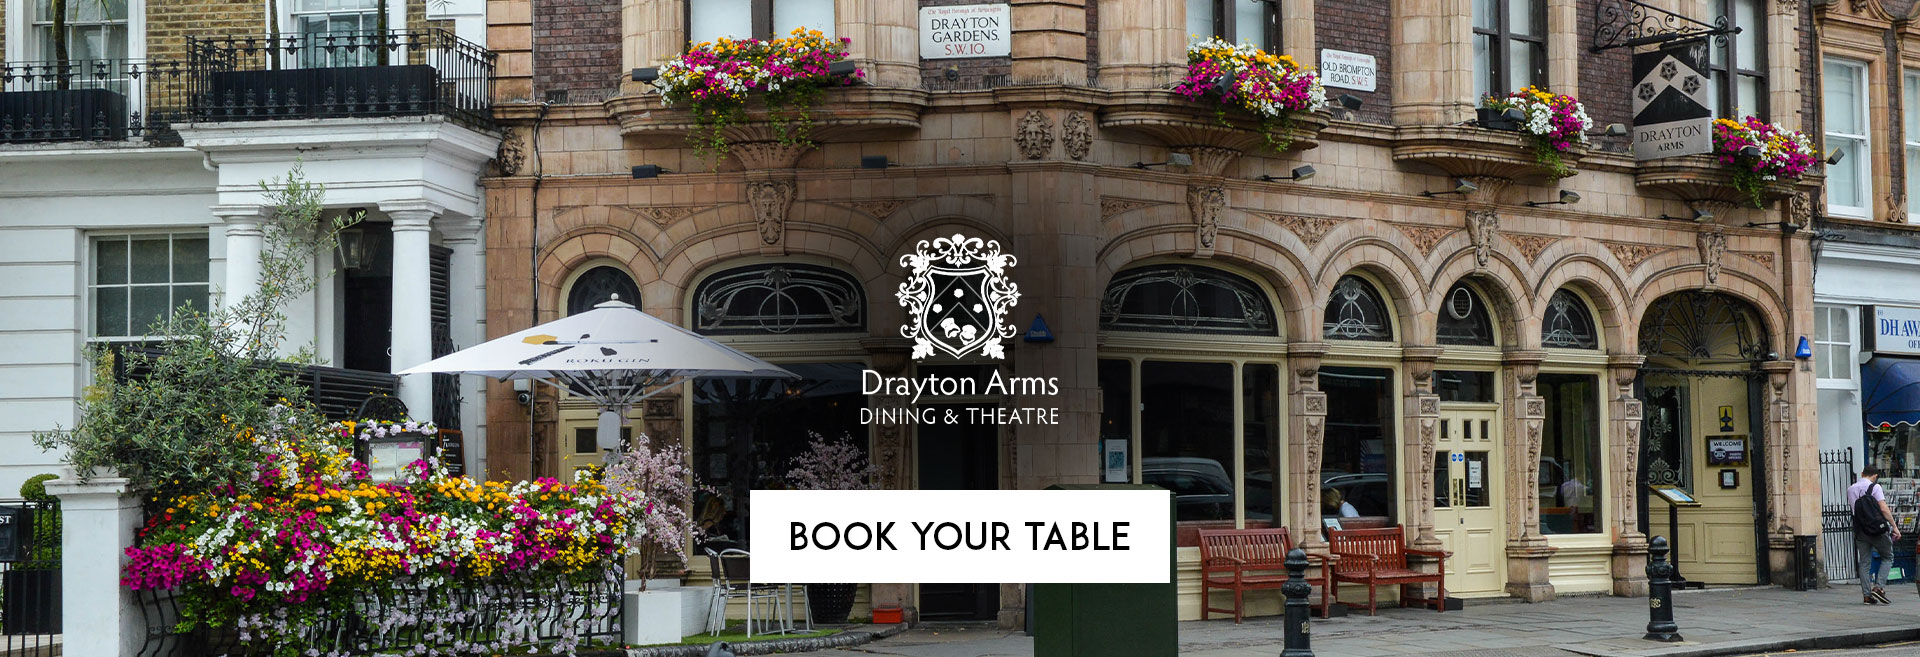 Book Your Table The Drayton Arms